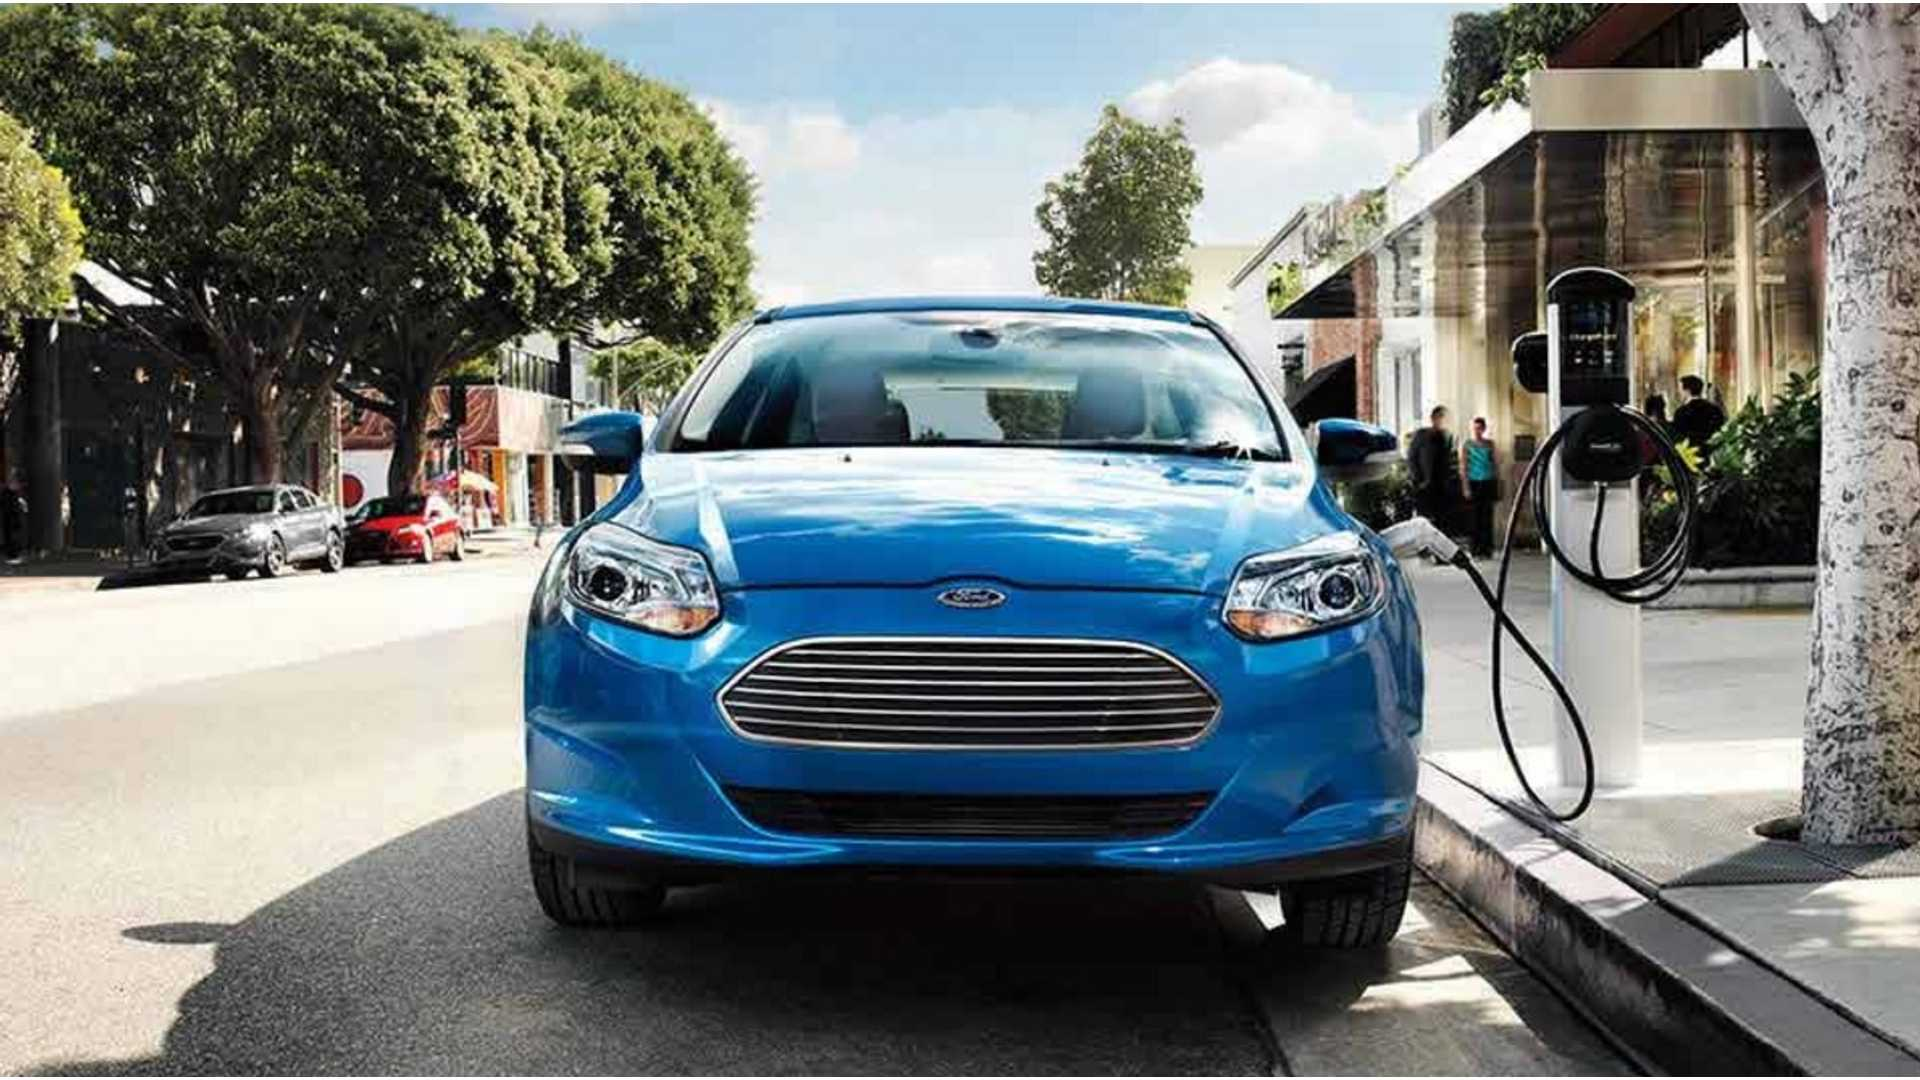 Detailed Range Ratings For Updated 2017 Ford Focus Ev 126 Miles In The City